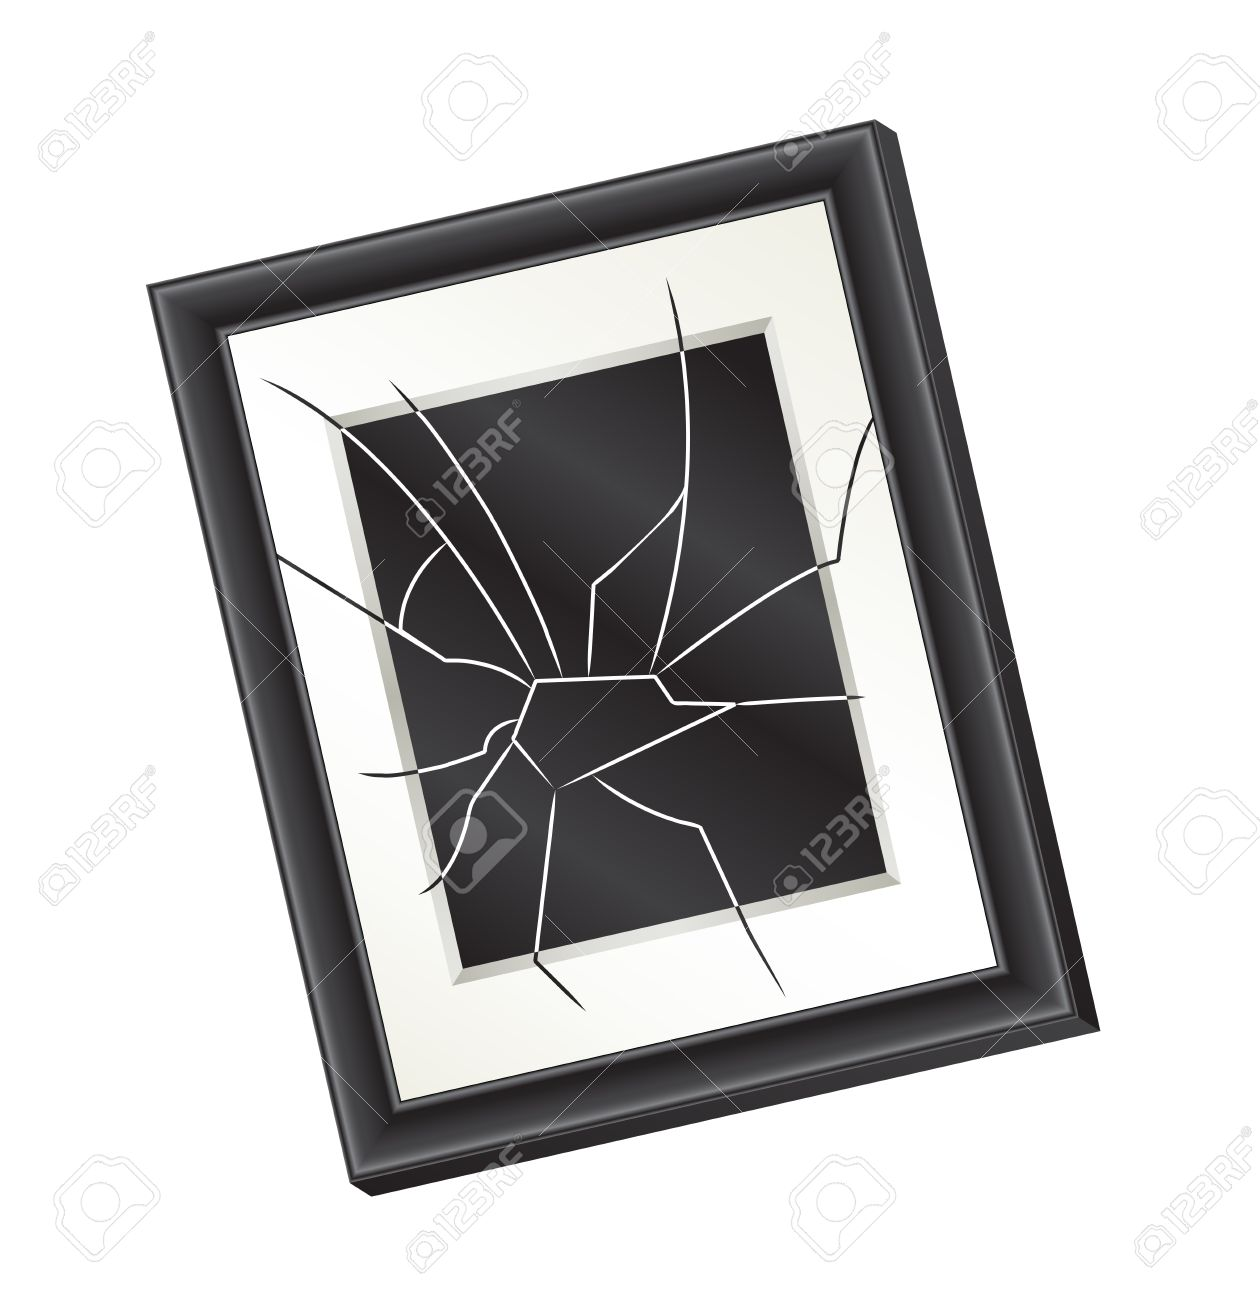 Illustration Of A Crooked Broken Picture Frame Hanging On A Wall.